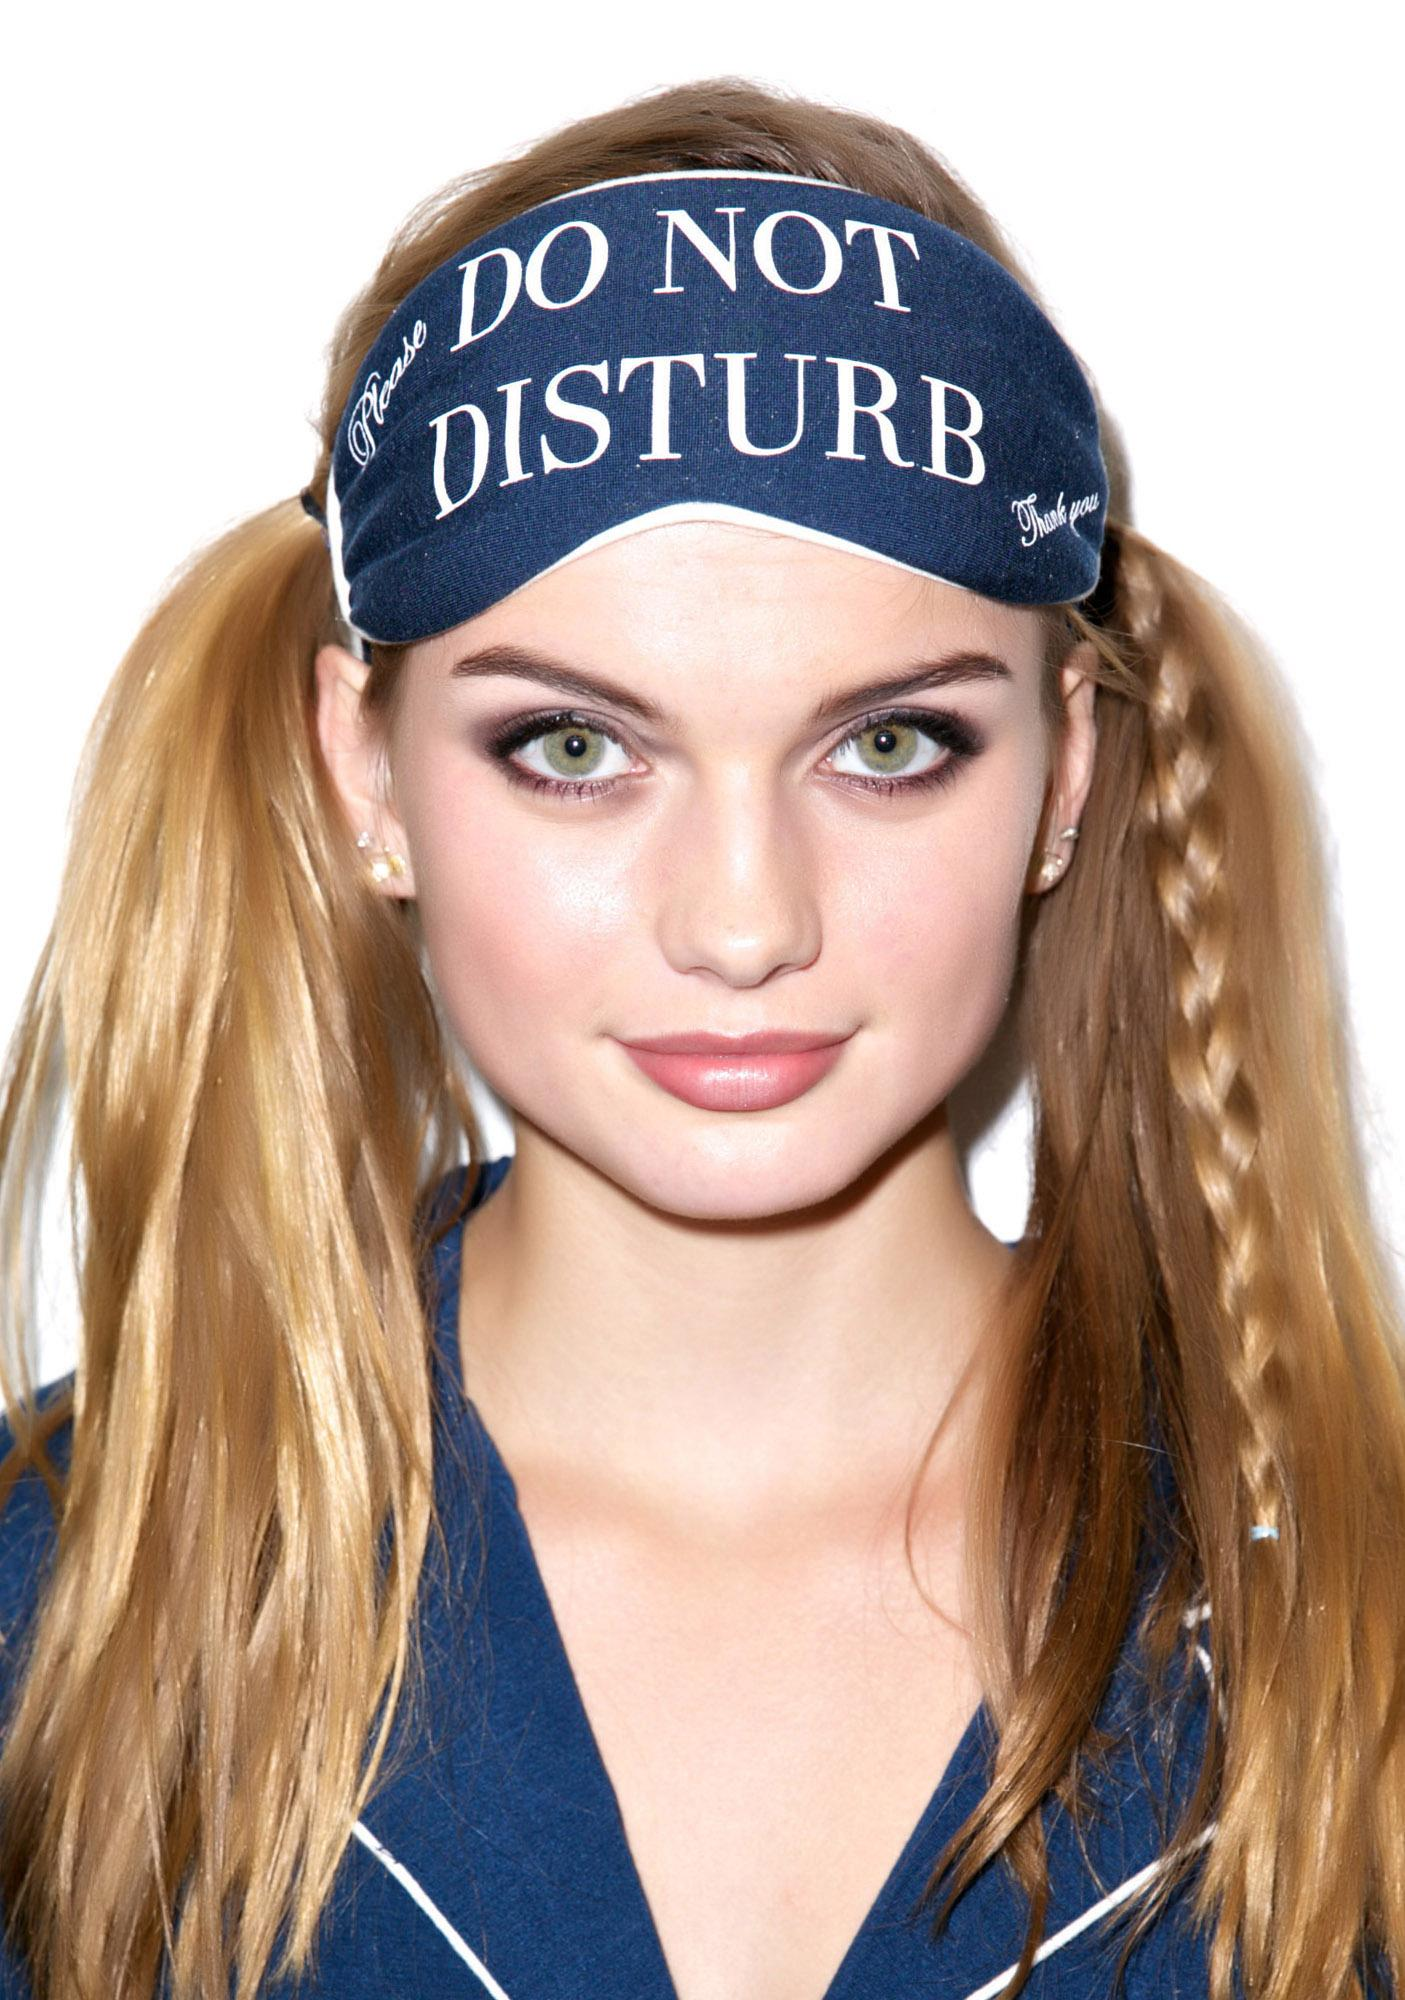 Wildfox Couture Do Not Disturb Eye Mask